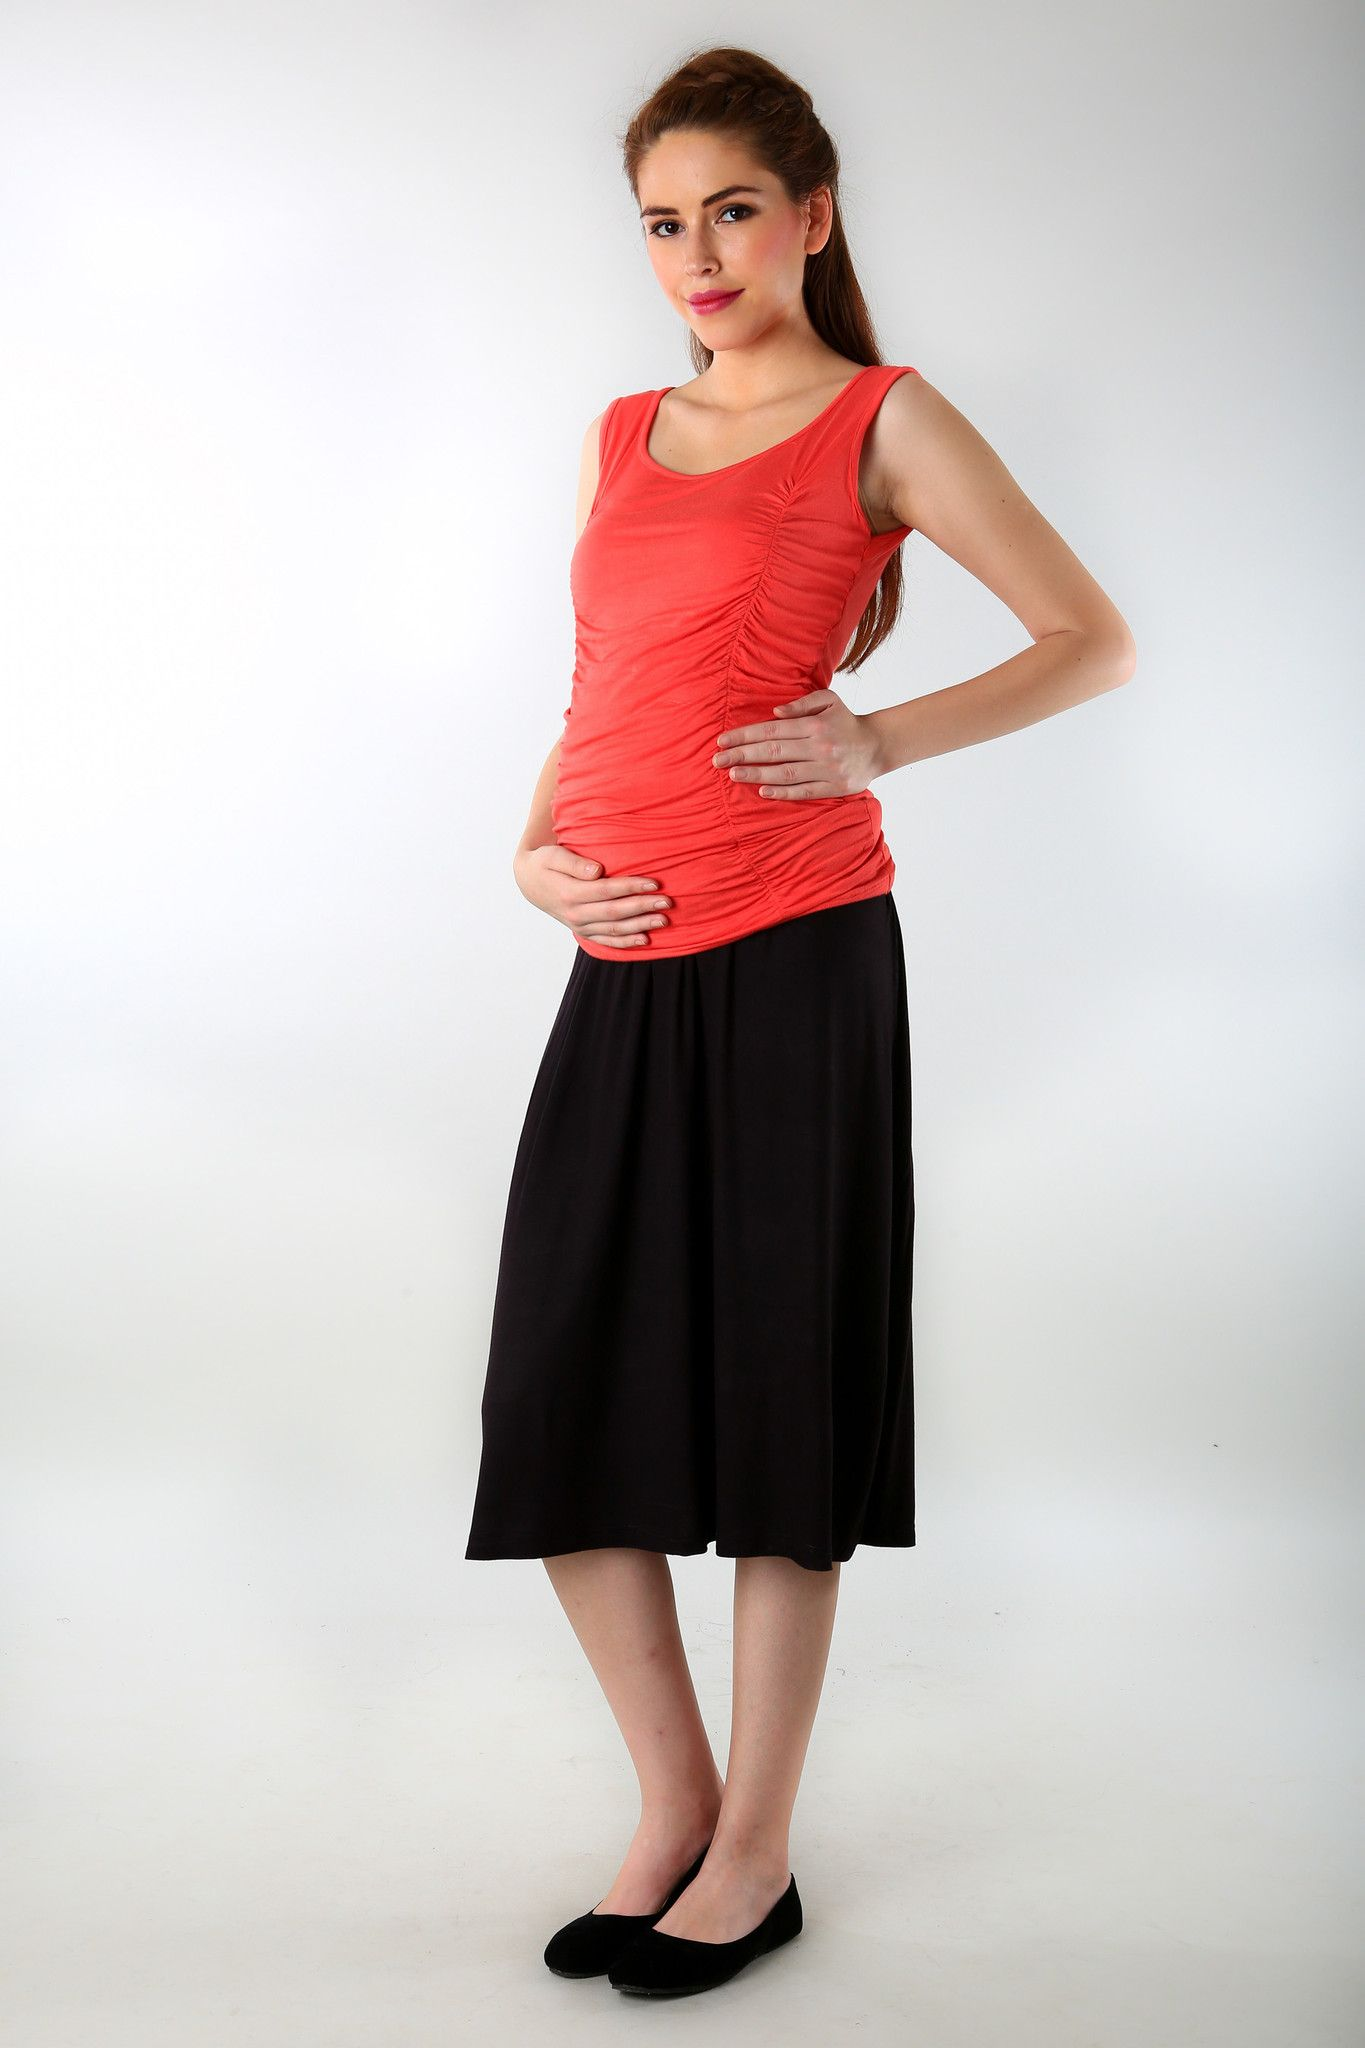 Momzjoy premium black maternity skirtlooksgud momzjoy black buy momzjoy premium black maternity skirt online in india at best price buy online momzjoy maternity dresses pregnancy wear nursing clothes ombrellifo Image collections